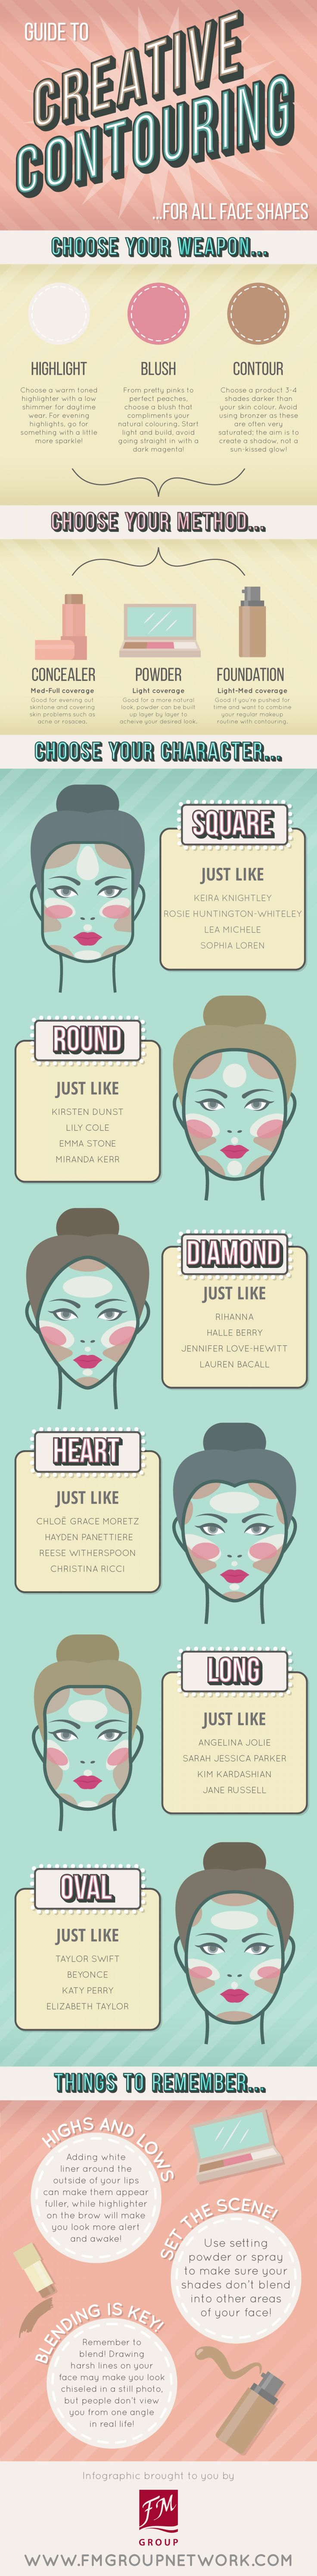 A Guide To Creative Contouring Infographic #contourtutorial #contouring #highlighting #makeup